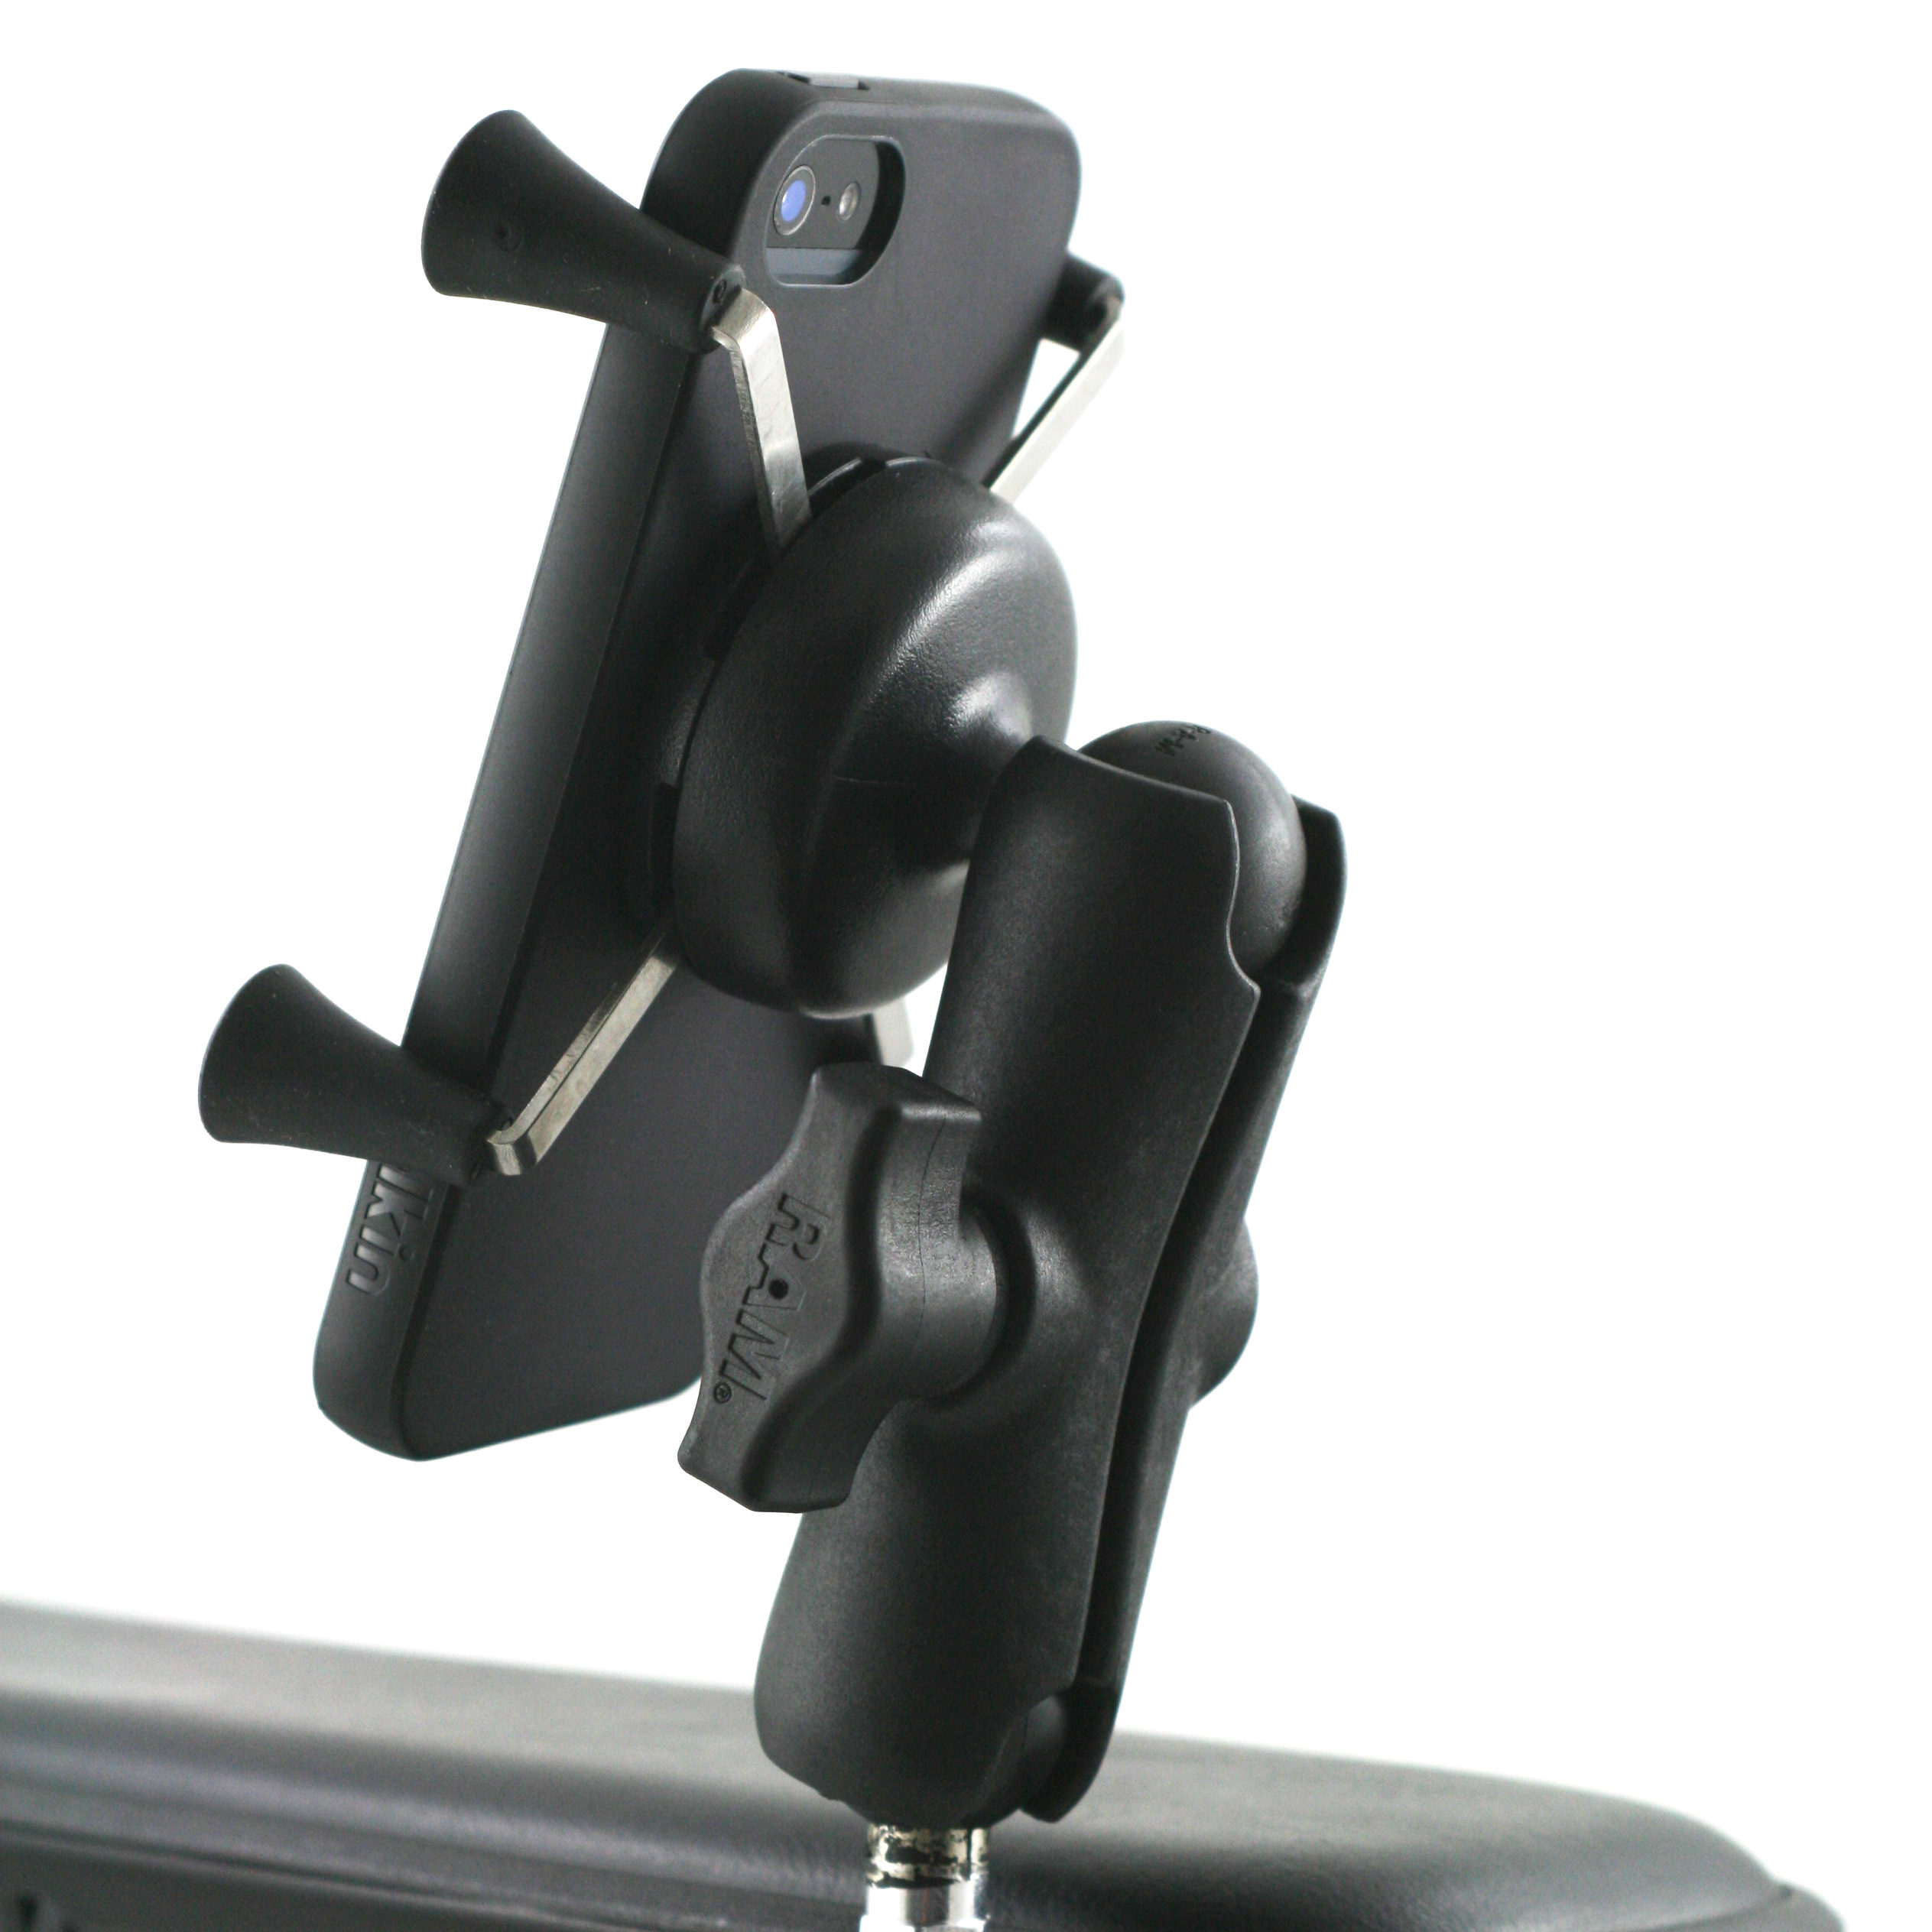 RAM X-Grip Phone Holder - Back View